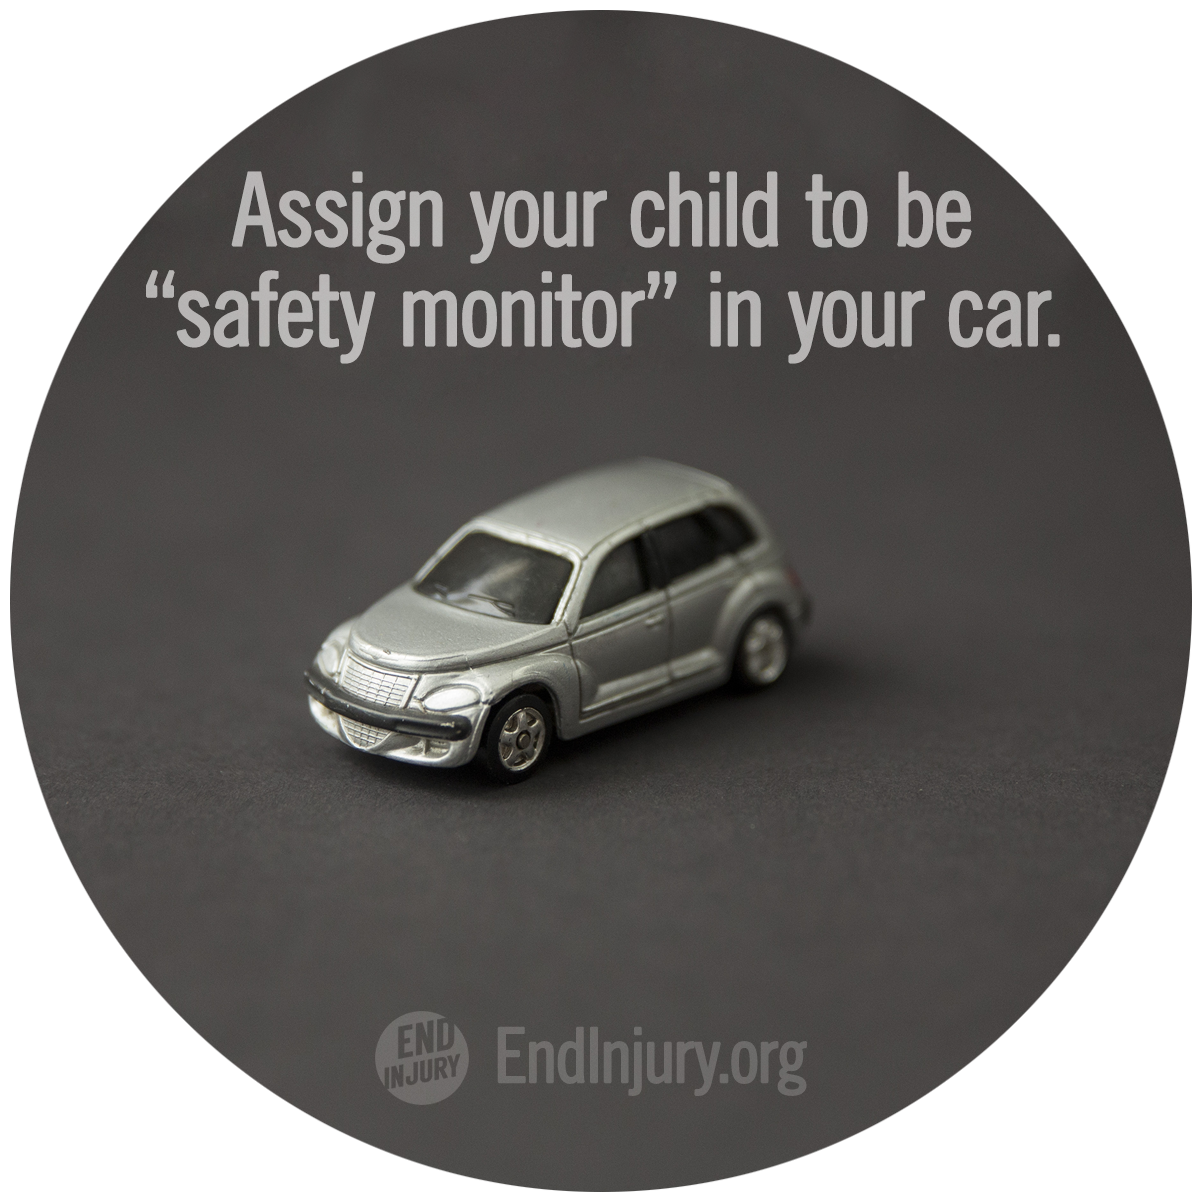 child-driving-safety-monitor-action-photo.png